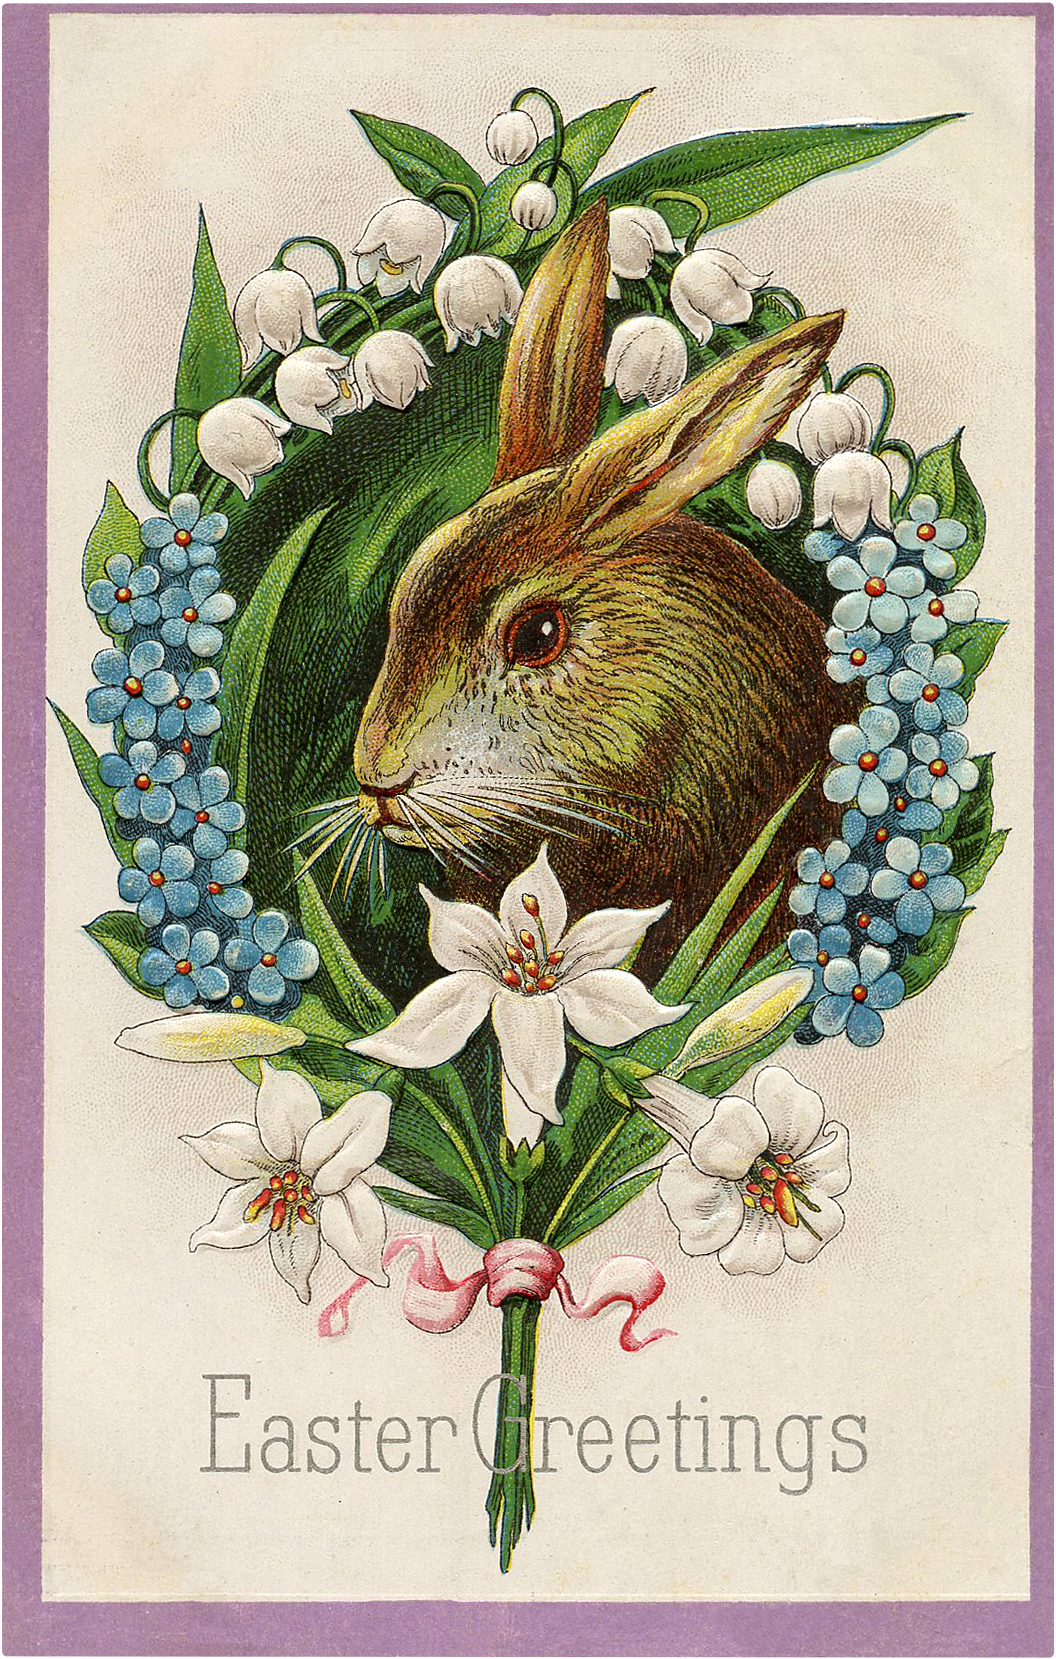 22 Easter Bunny Images Free - Updated! - The Graphics Fairy